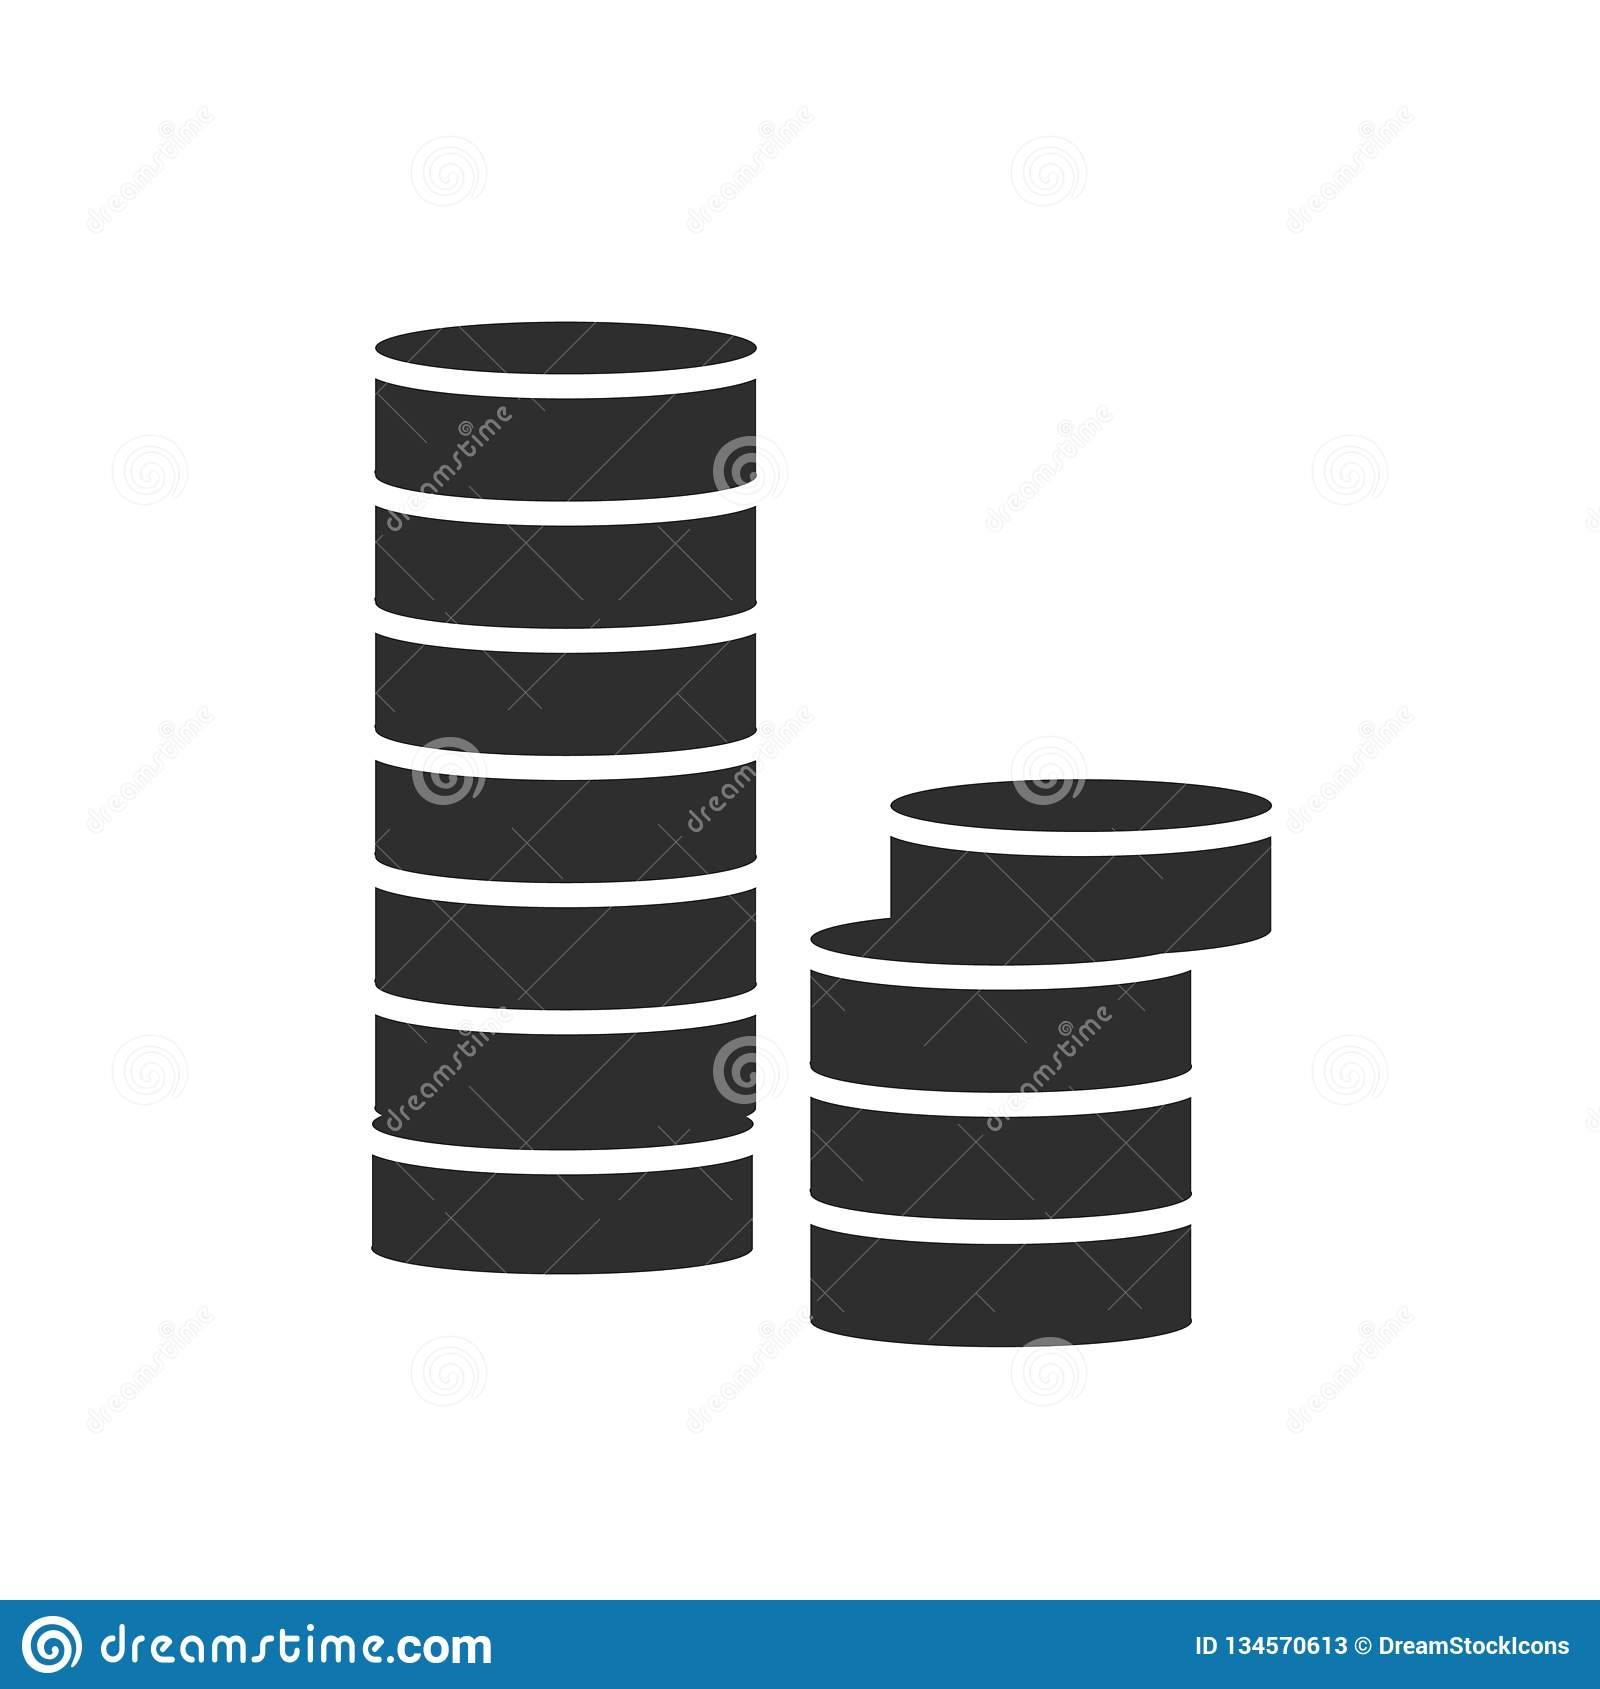 Stacks of coins icon vector sign and symbol isolated on white background, Stacks of coins logo concept